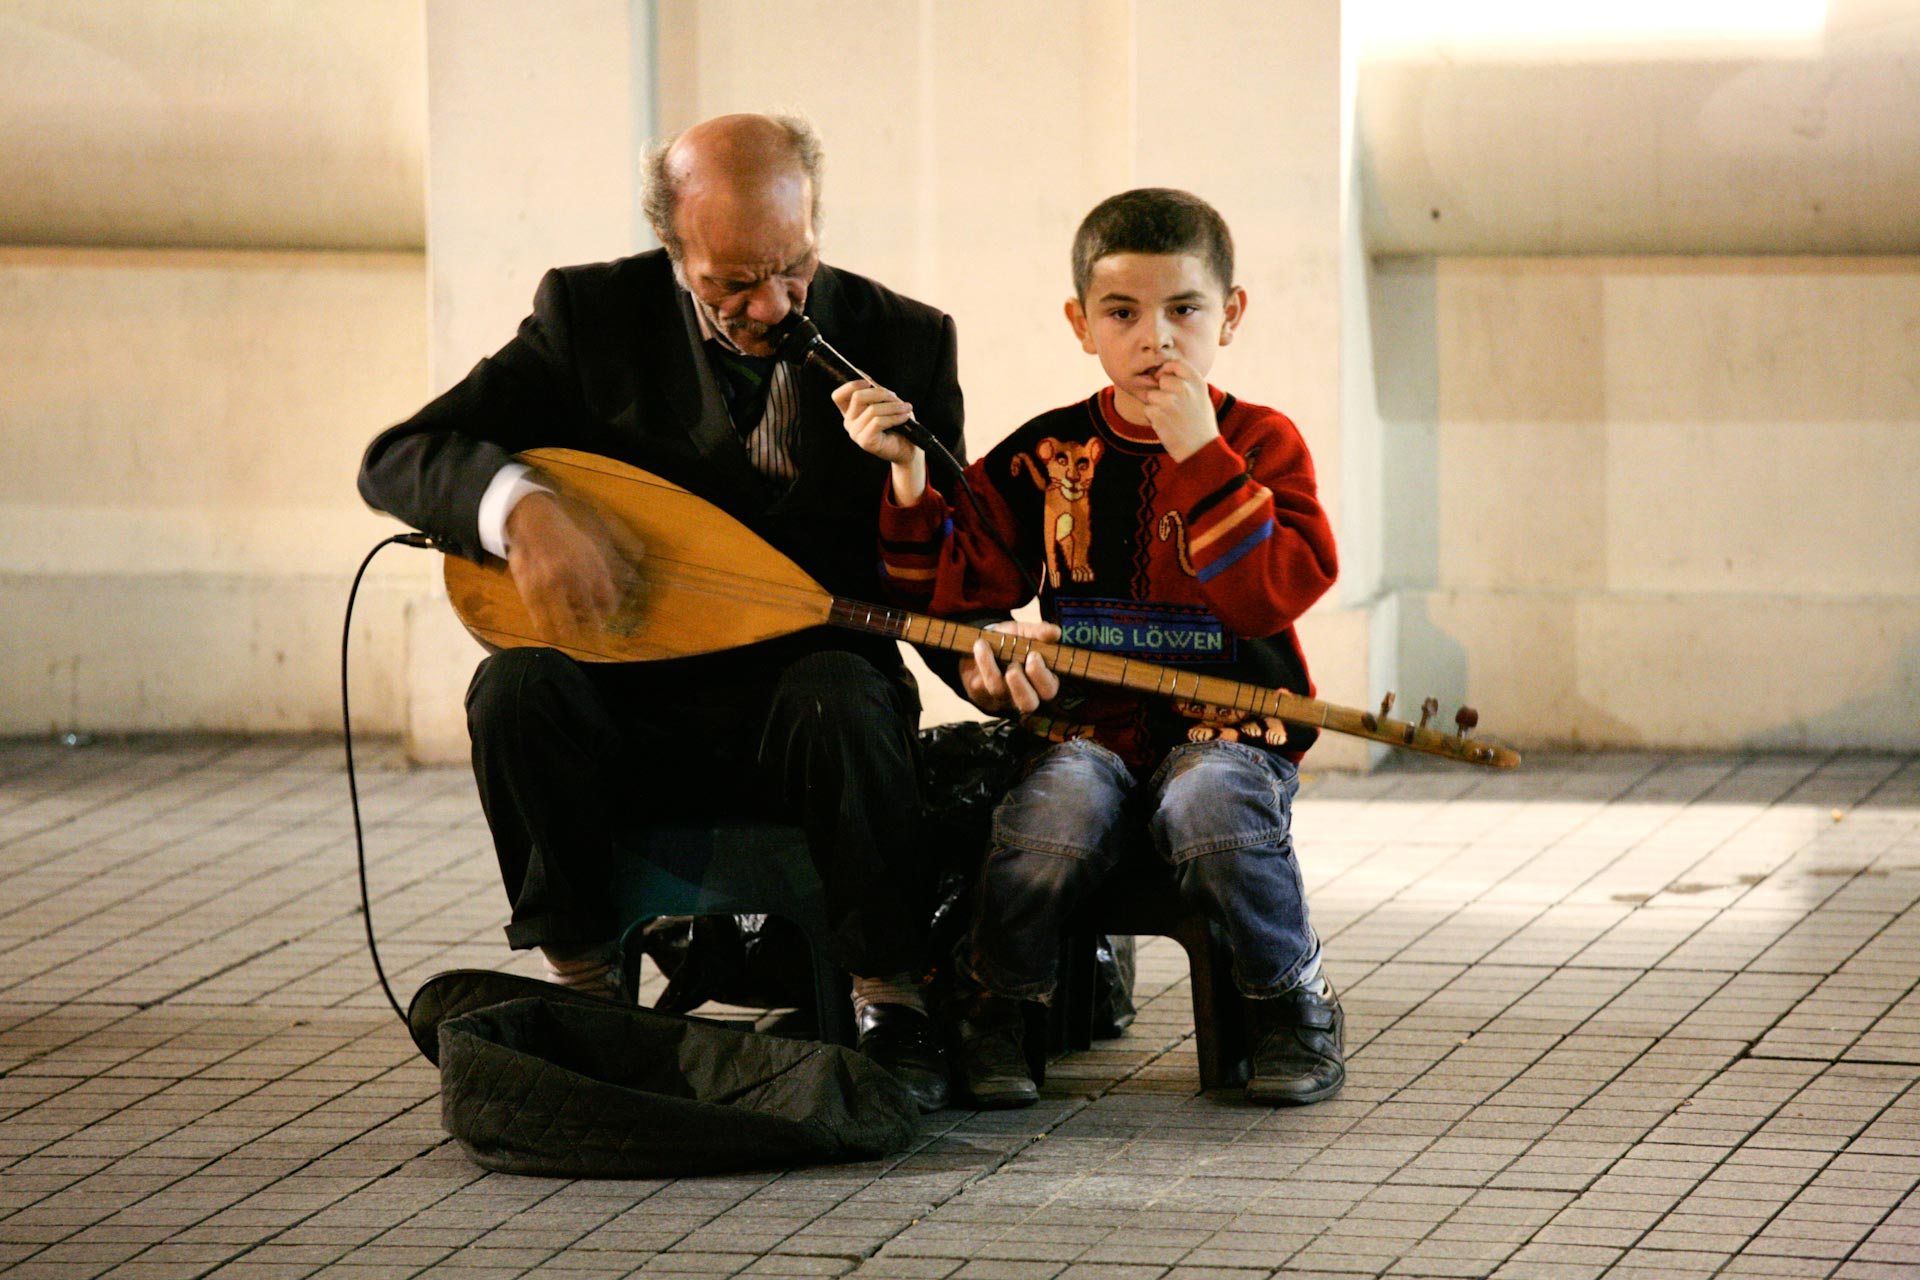 This blind man playing his Saz often on the İstiklal Caddesi, Beyoğlu, beeing assisted by his grandson, who later collects the coins